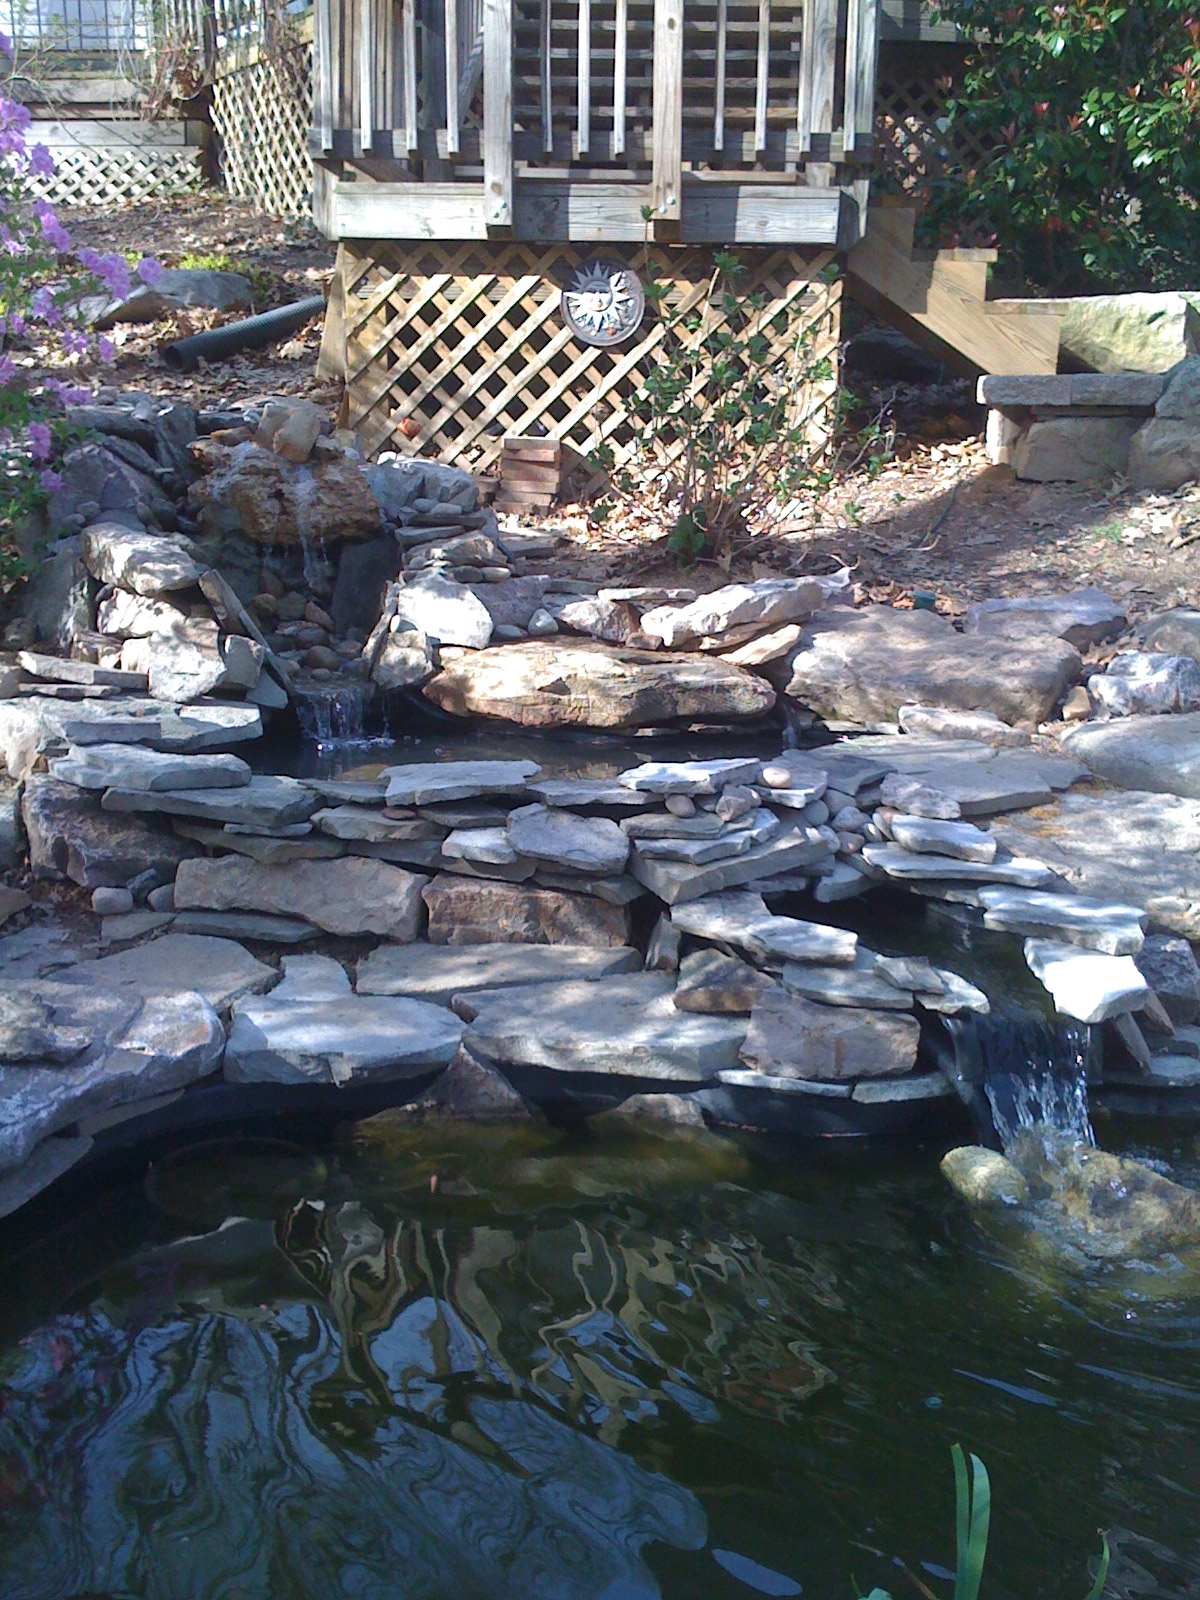 How To Build A Pond The Ponds Project A Gardener S Delight